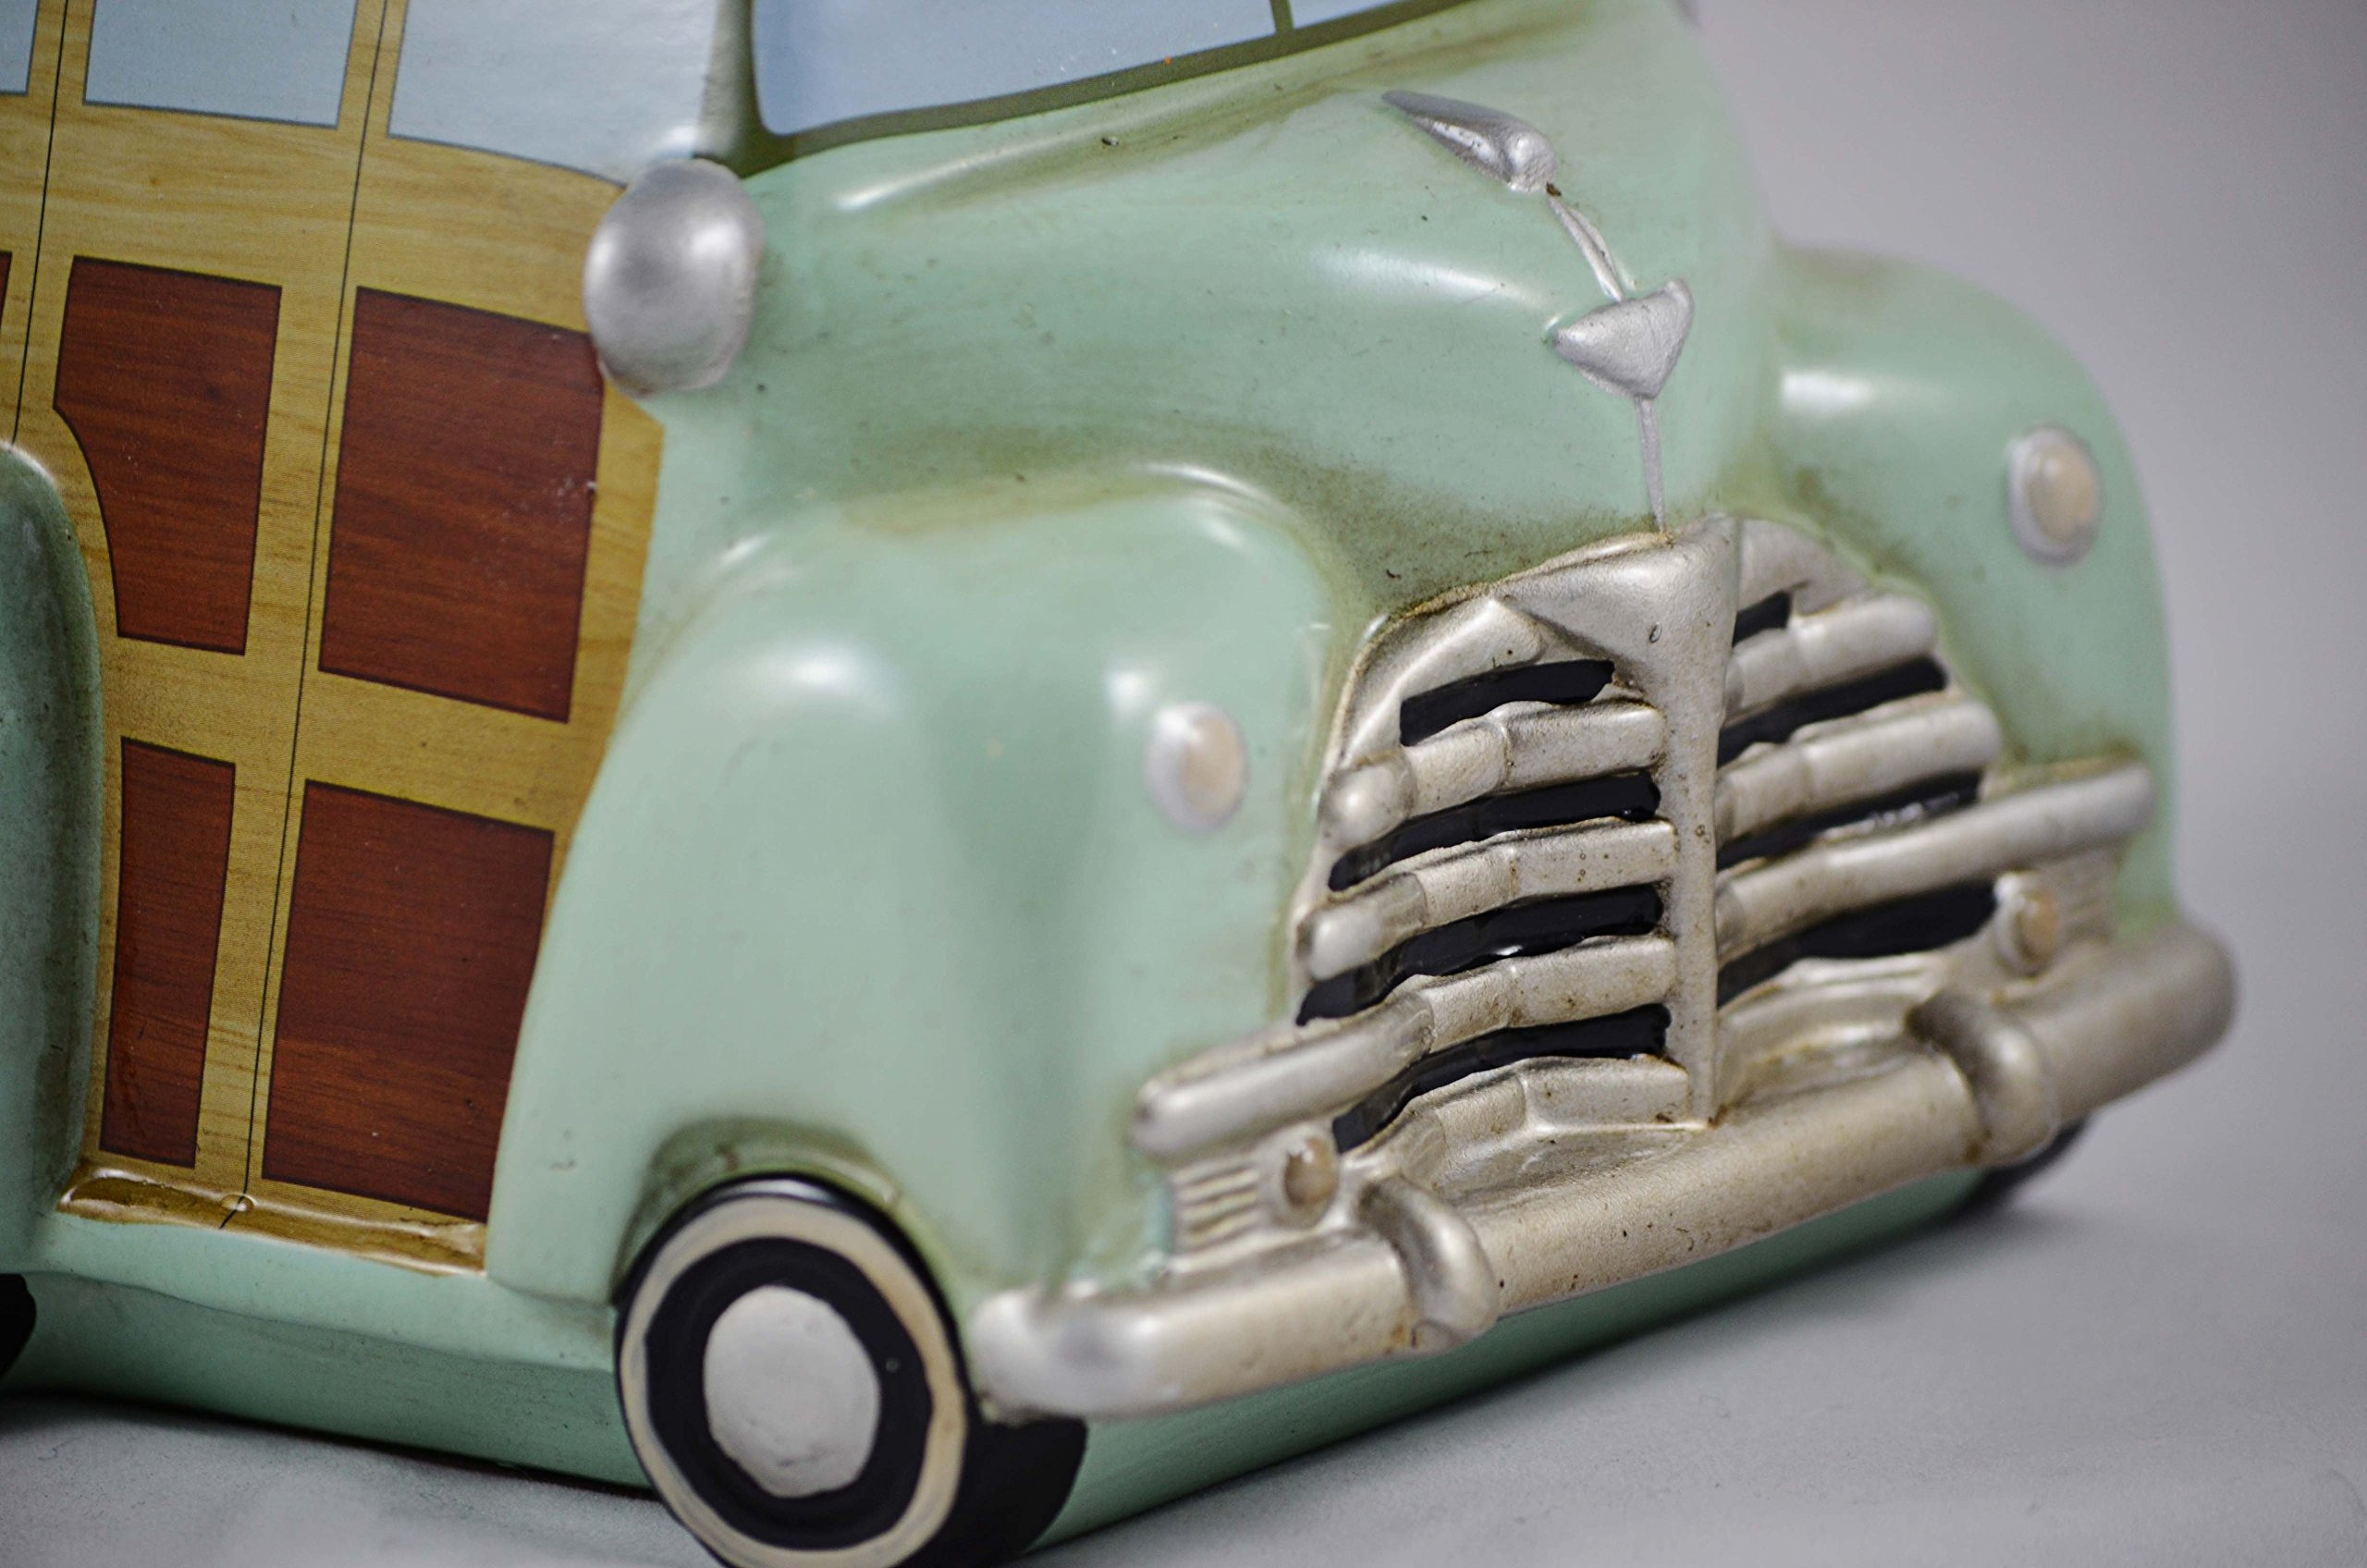 Scentsationals Retro Collection-Surf Woody Wagon - Scented Wax Cube Warmer by ScentSationals (Image #3)